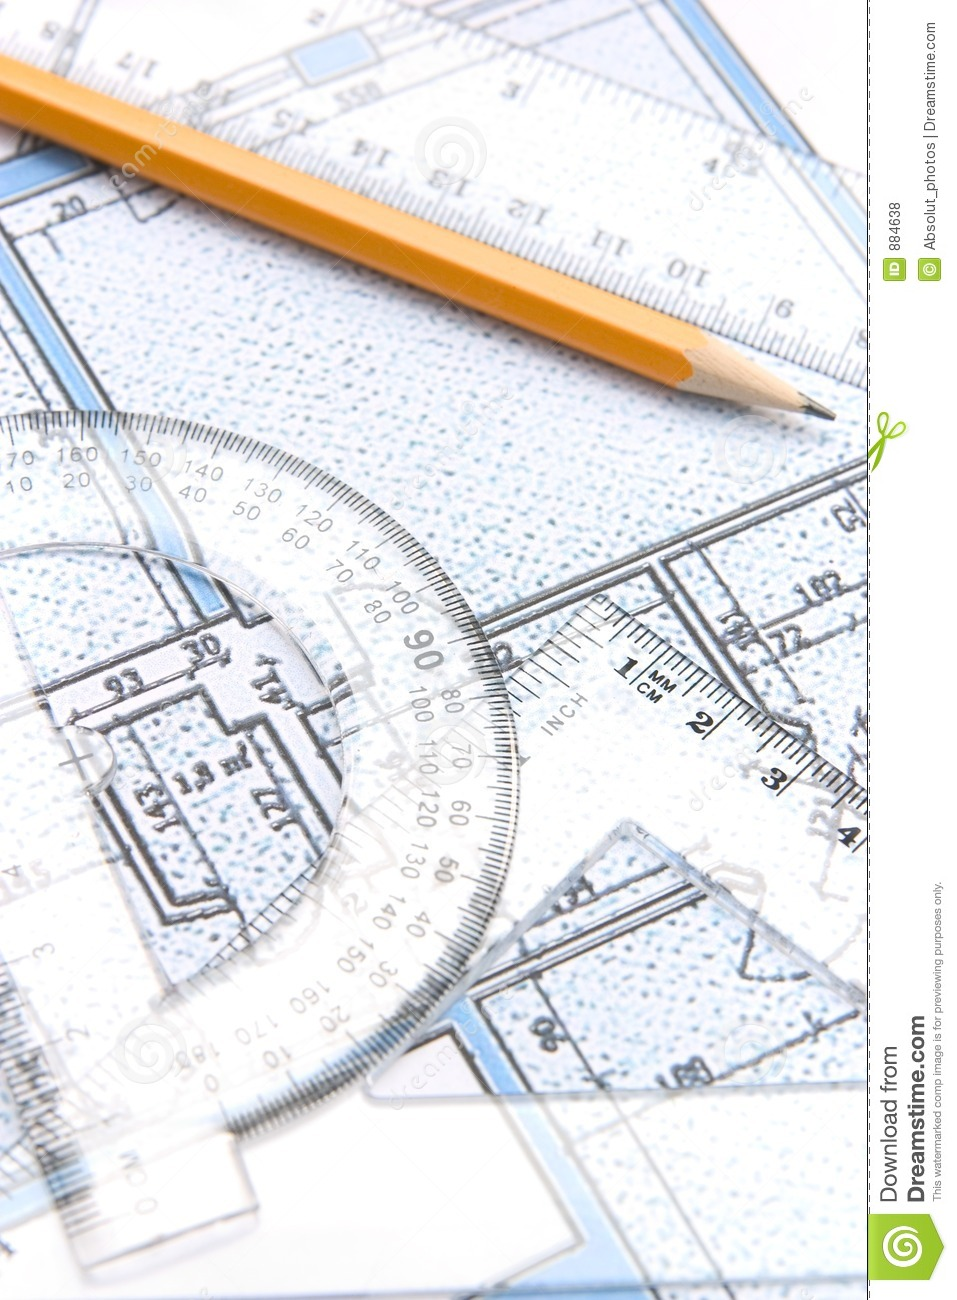 Geometric Tools And A Floor Plan Stock Photo Image 884638